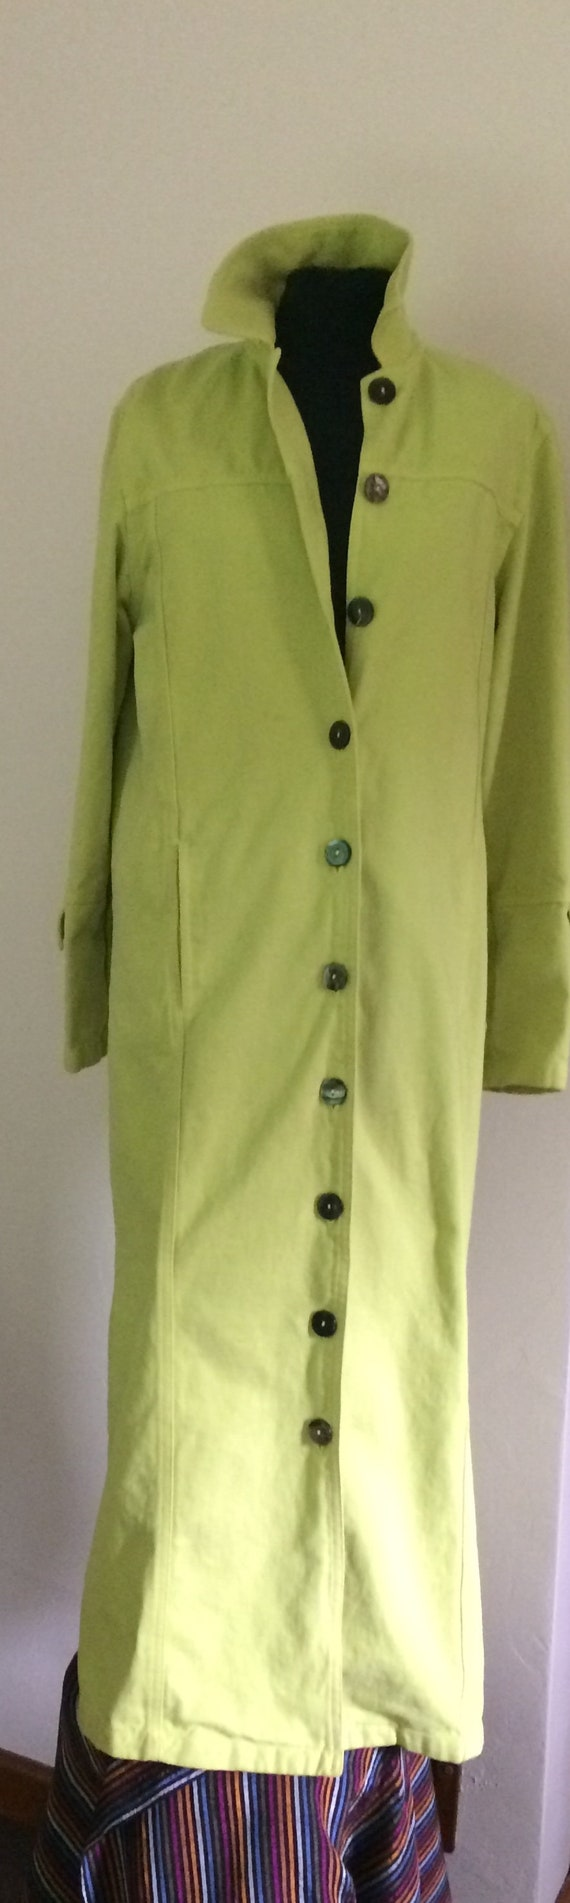 Long Lime Green Cotton Duster Coat